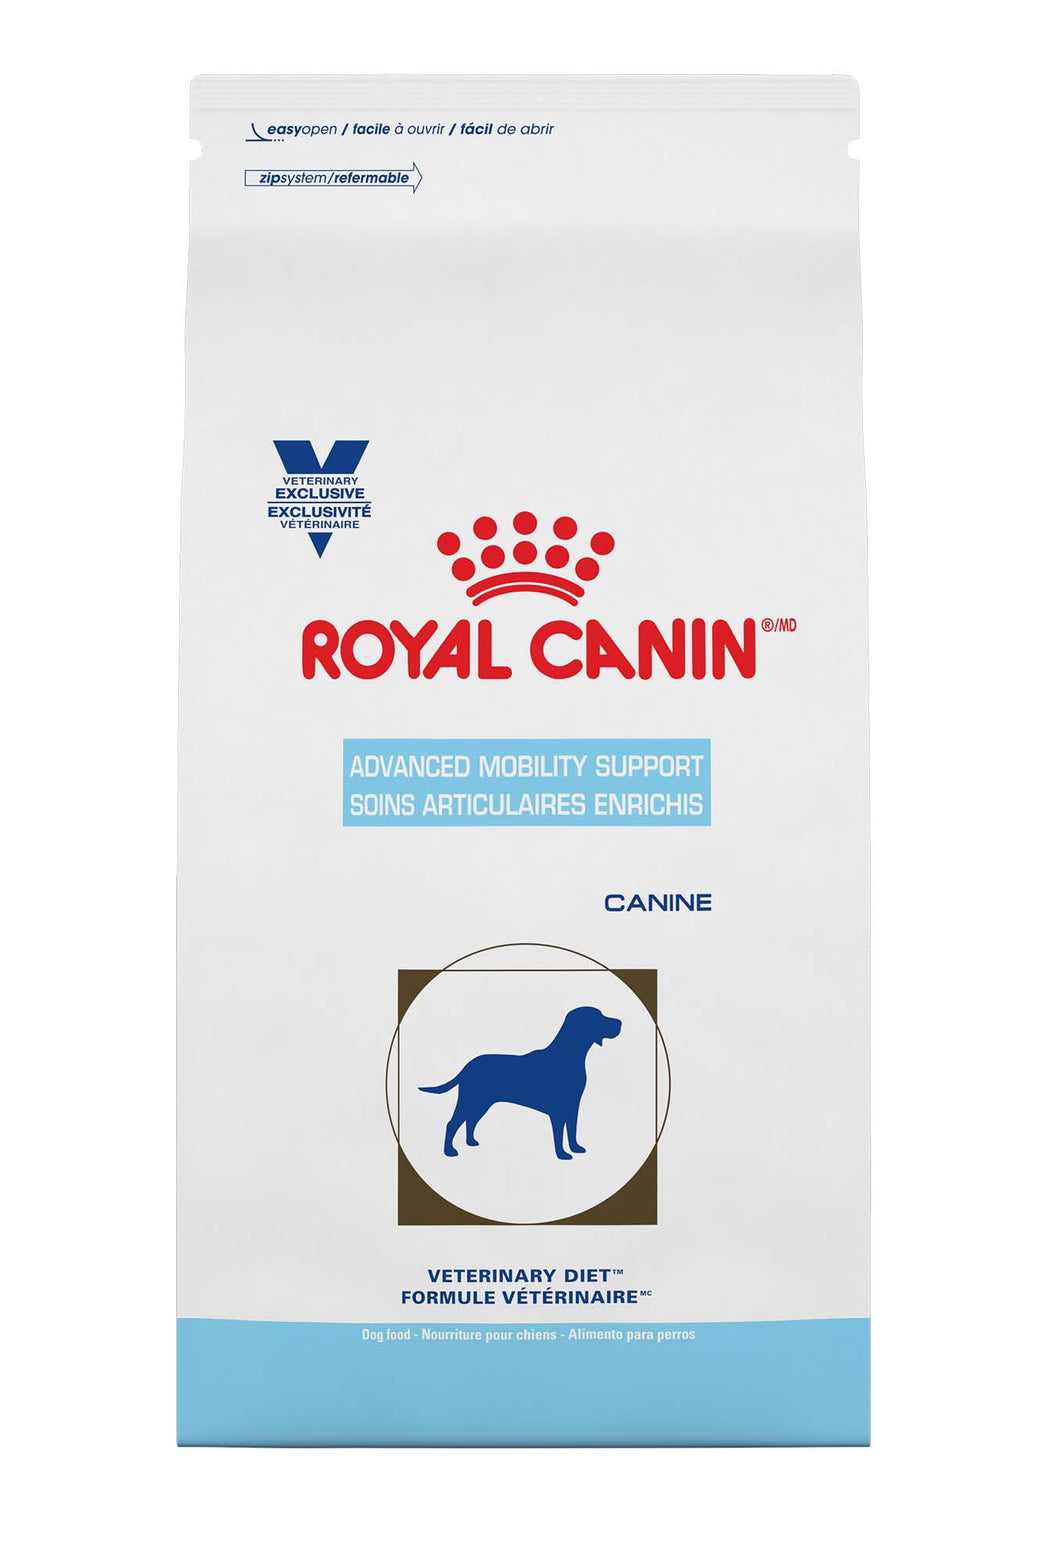 RC Vet. Diet Canine Advanced Mobility Support Dry Dog Food Bag